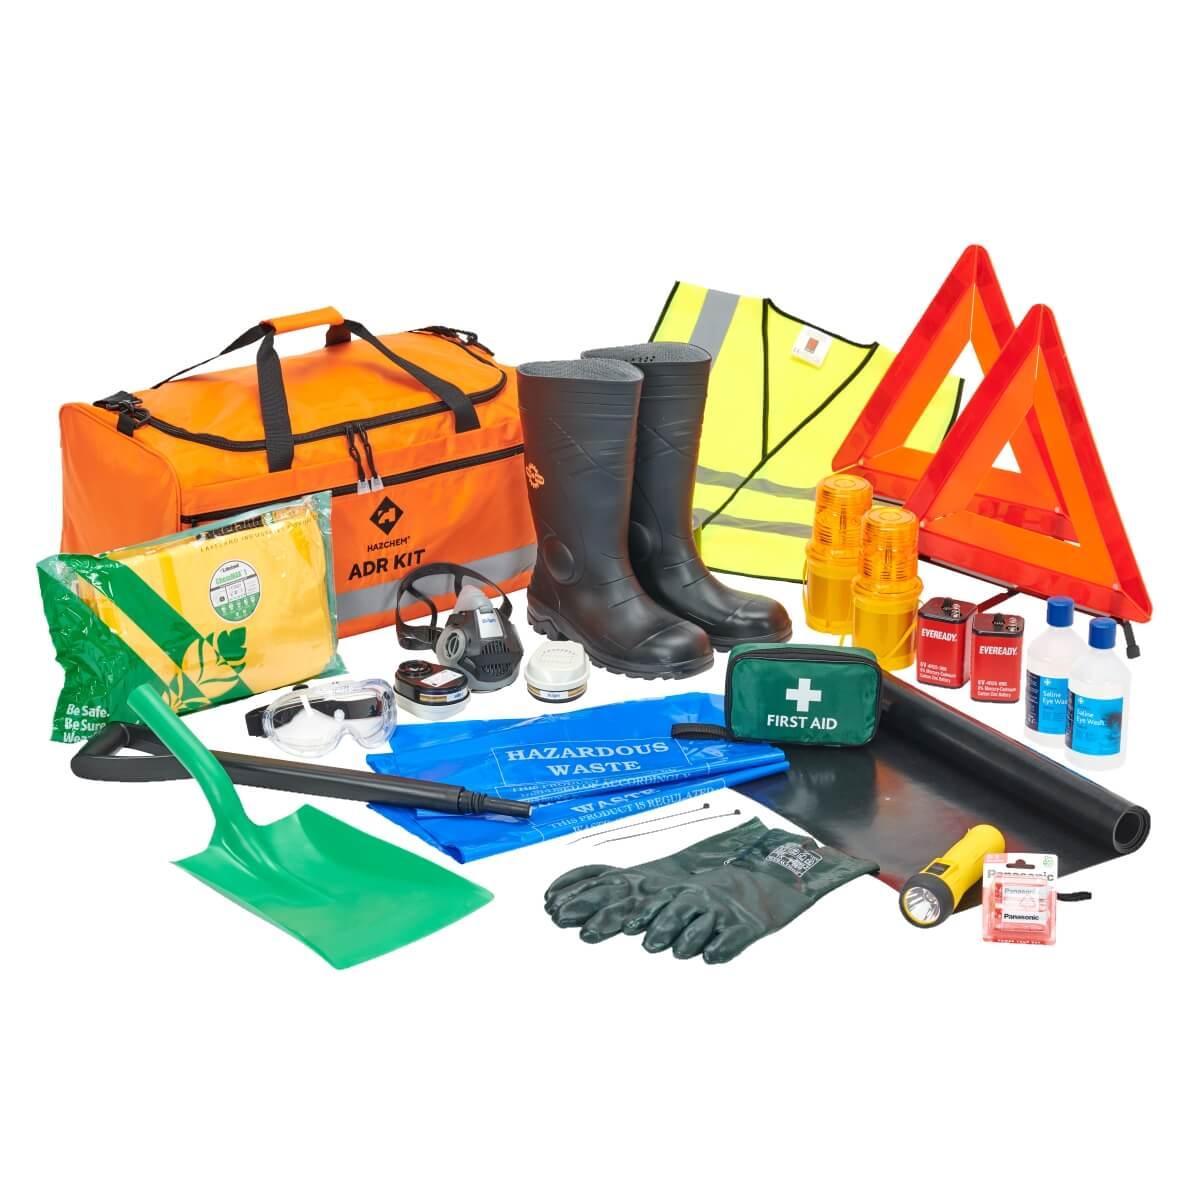 Full ADR & PPE Driver Kit